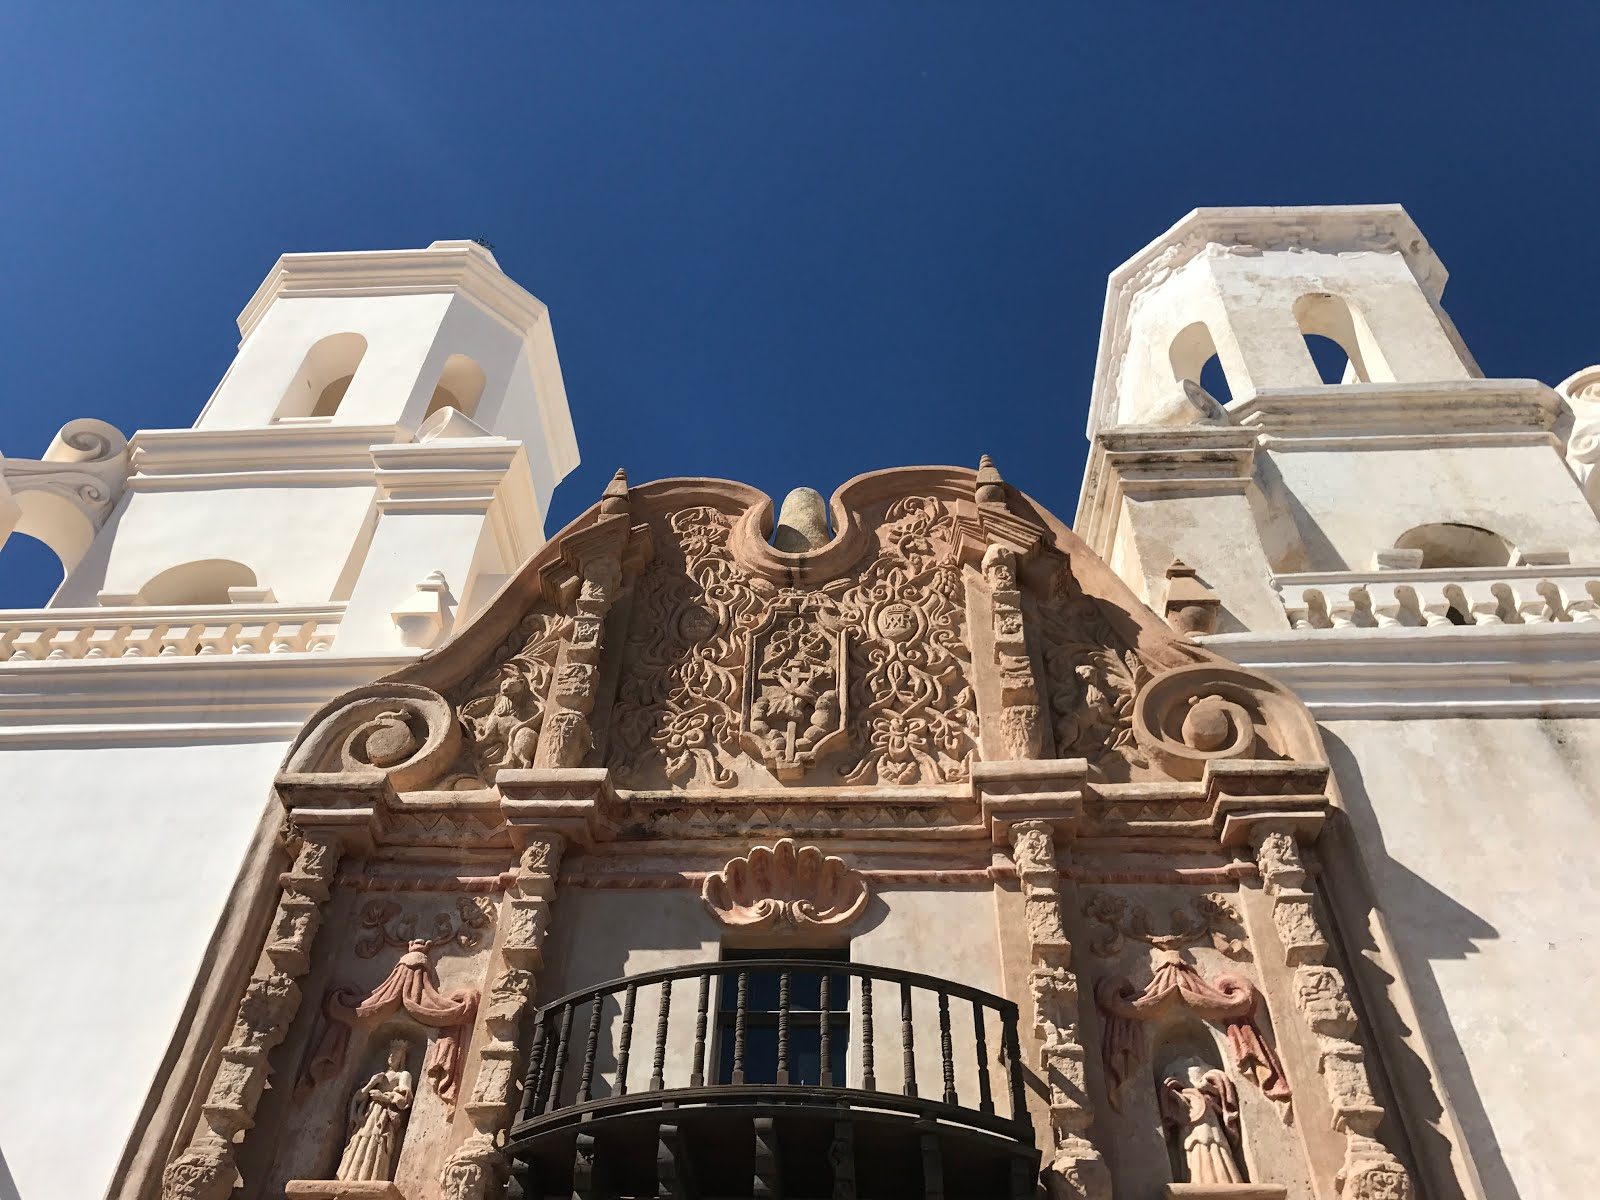 Mission San Xavier del Bac